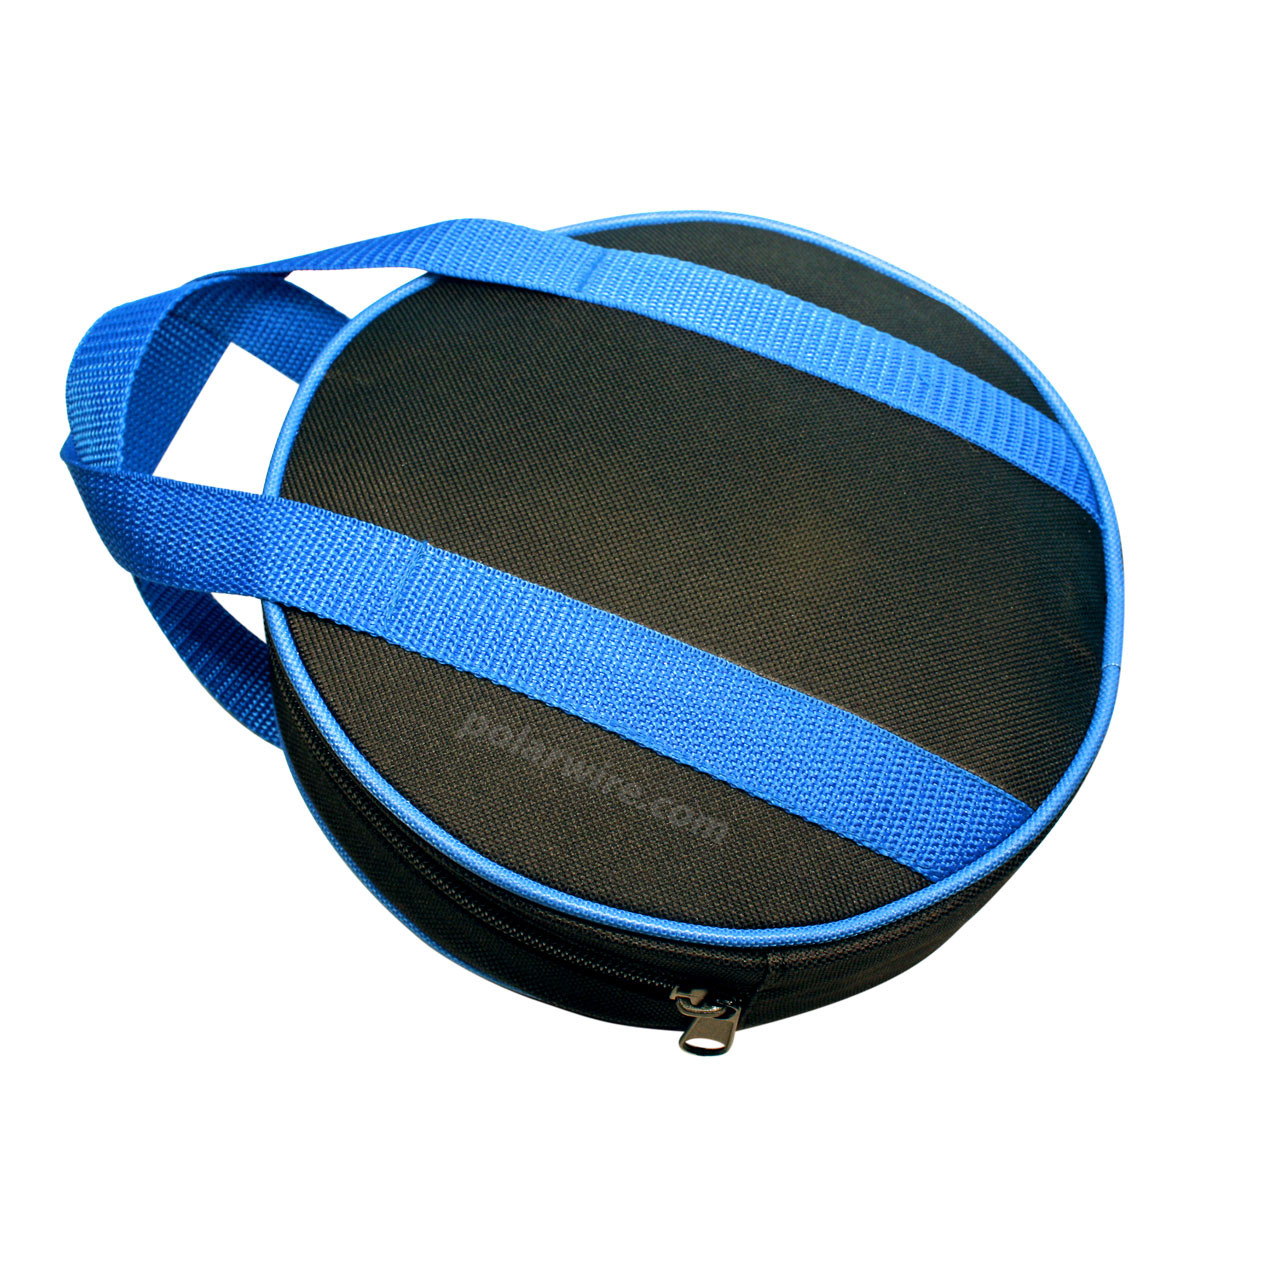 Sturdy nylon canvas jumper cable bag, 8 inches diameter by 2 inches high features nylon webbing handles and a wide zippered opening